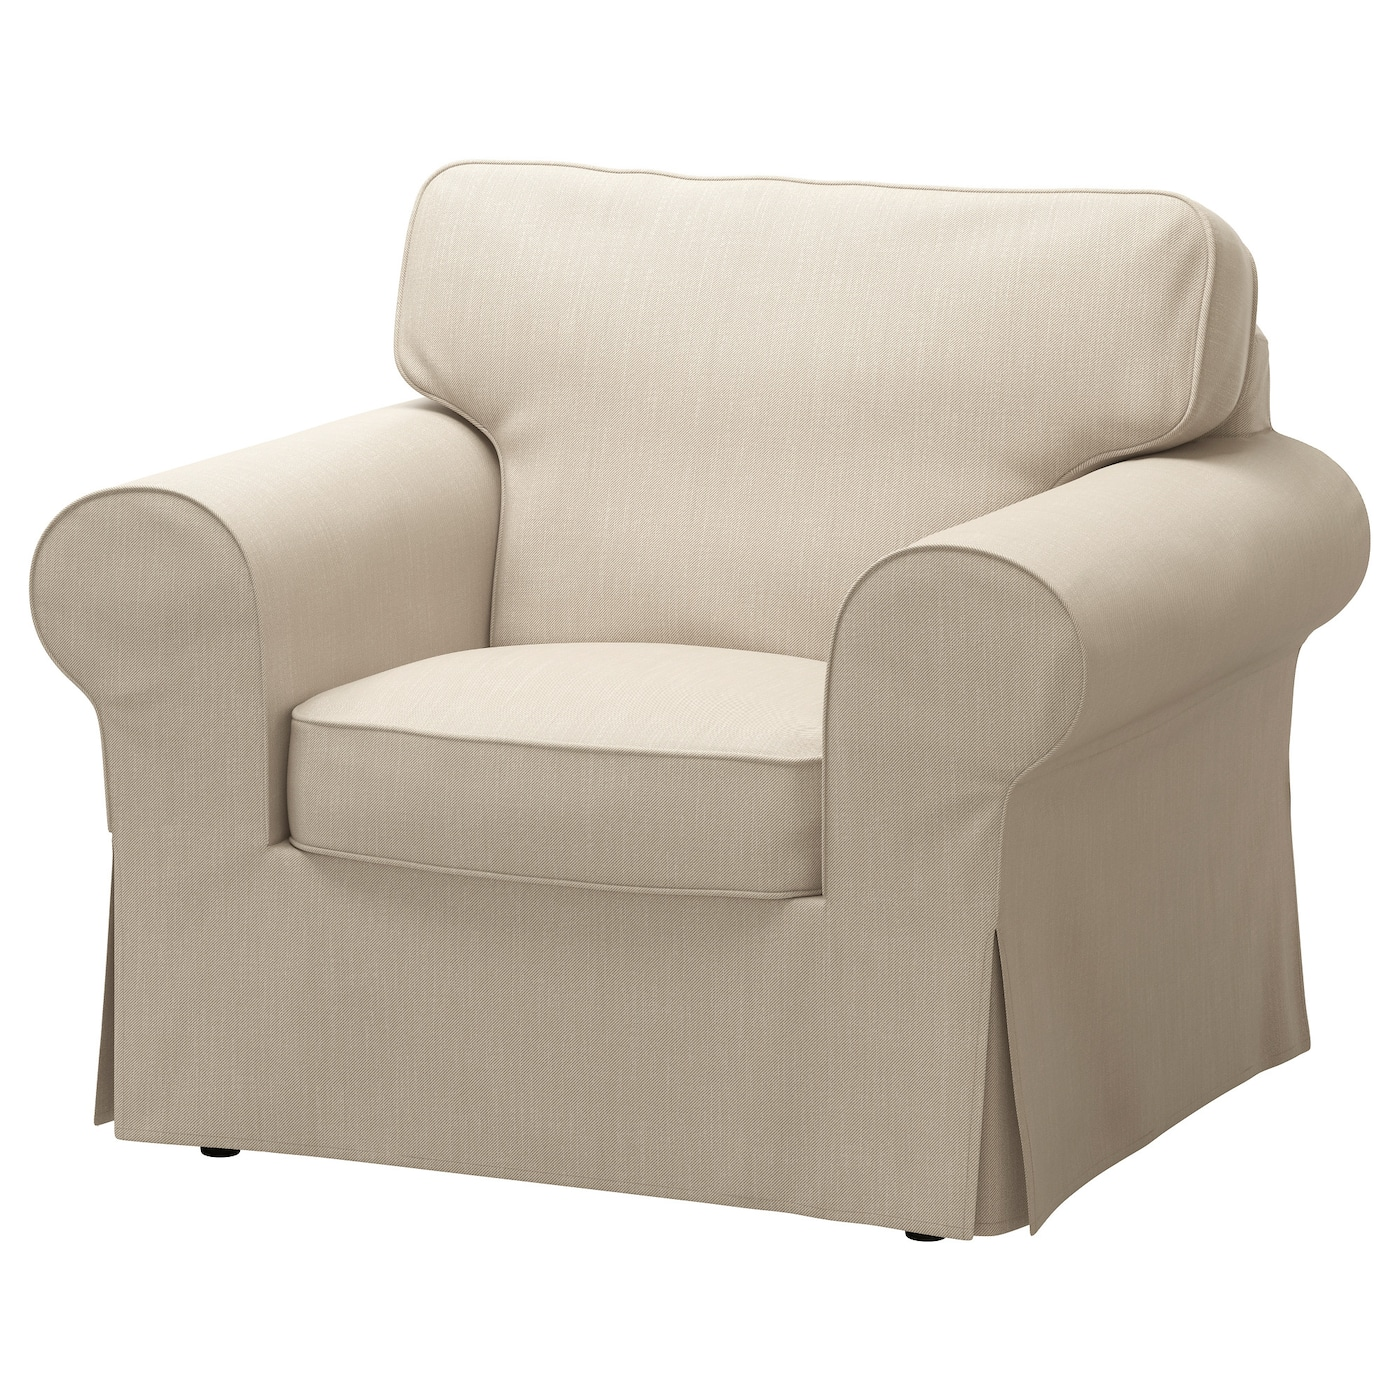 Ektorp armchair nordvalla dark beige ikea for Housse sofa ikea